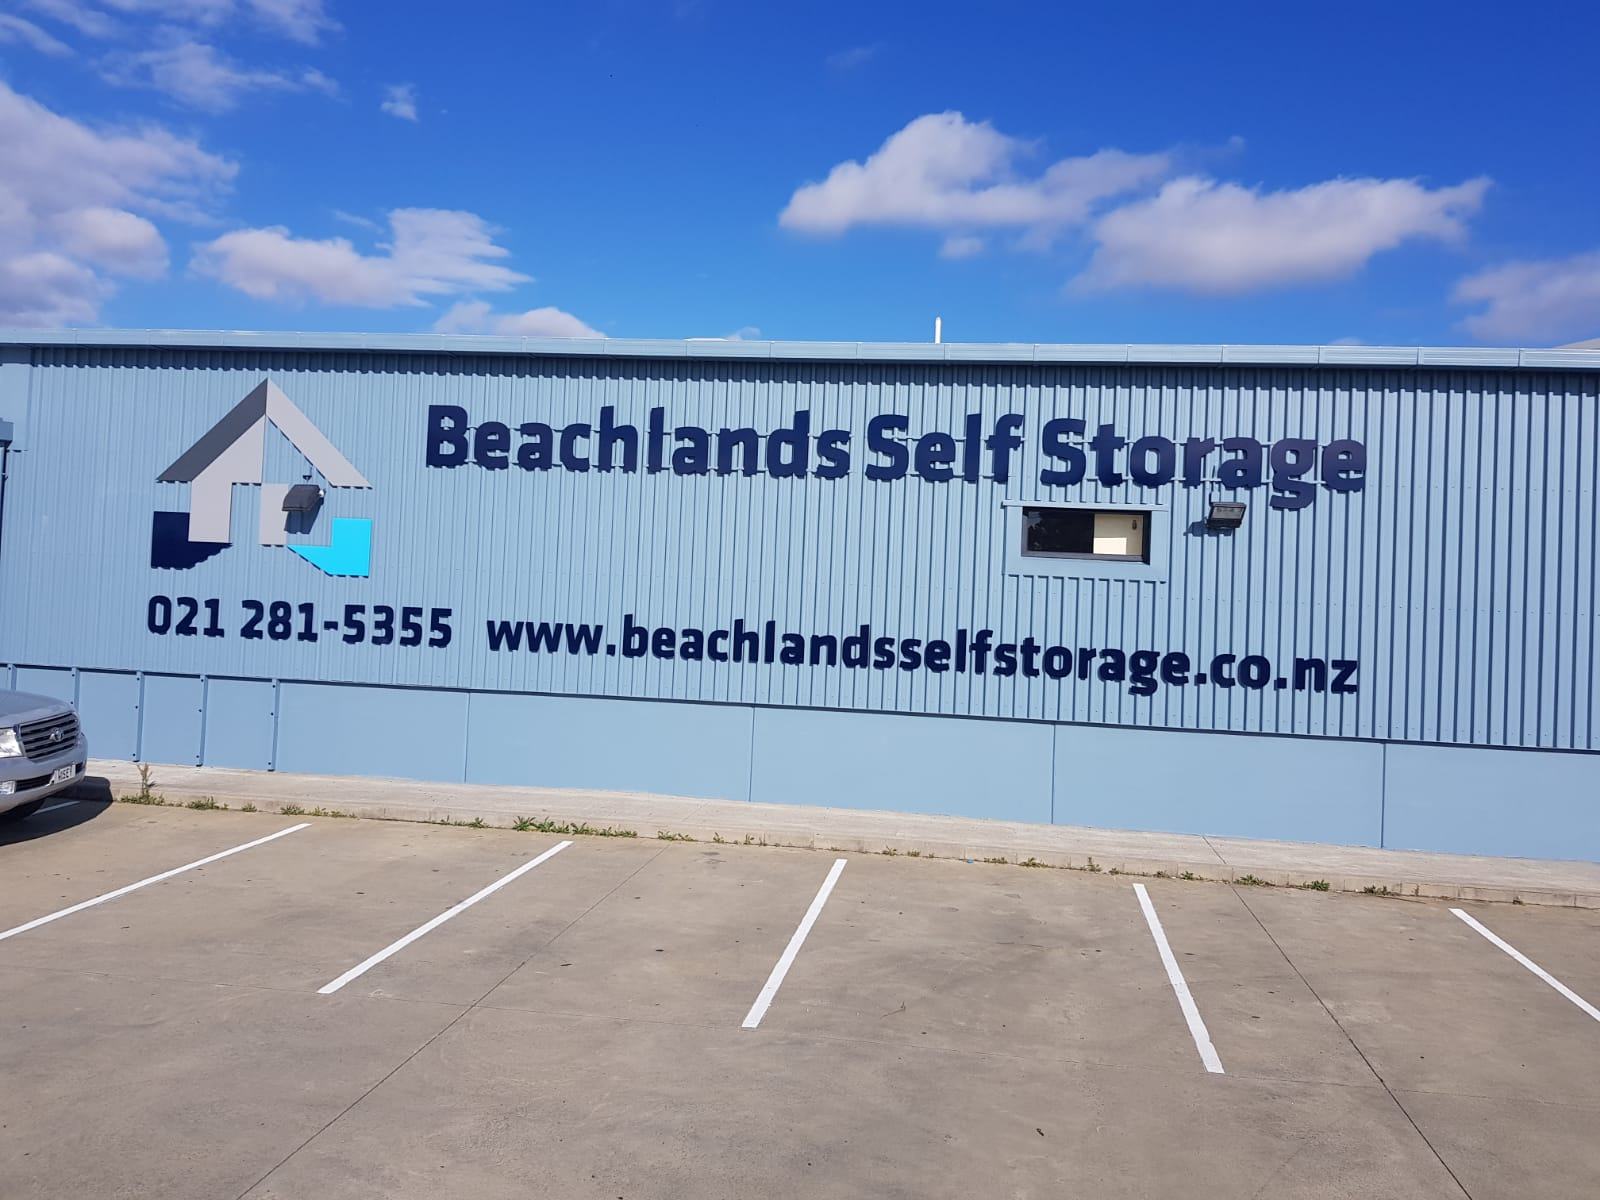 Beachlands Self Storage